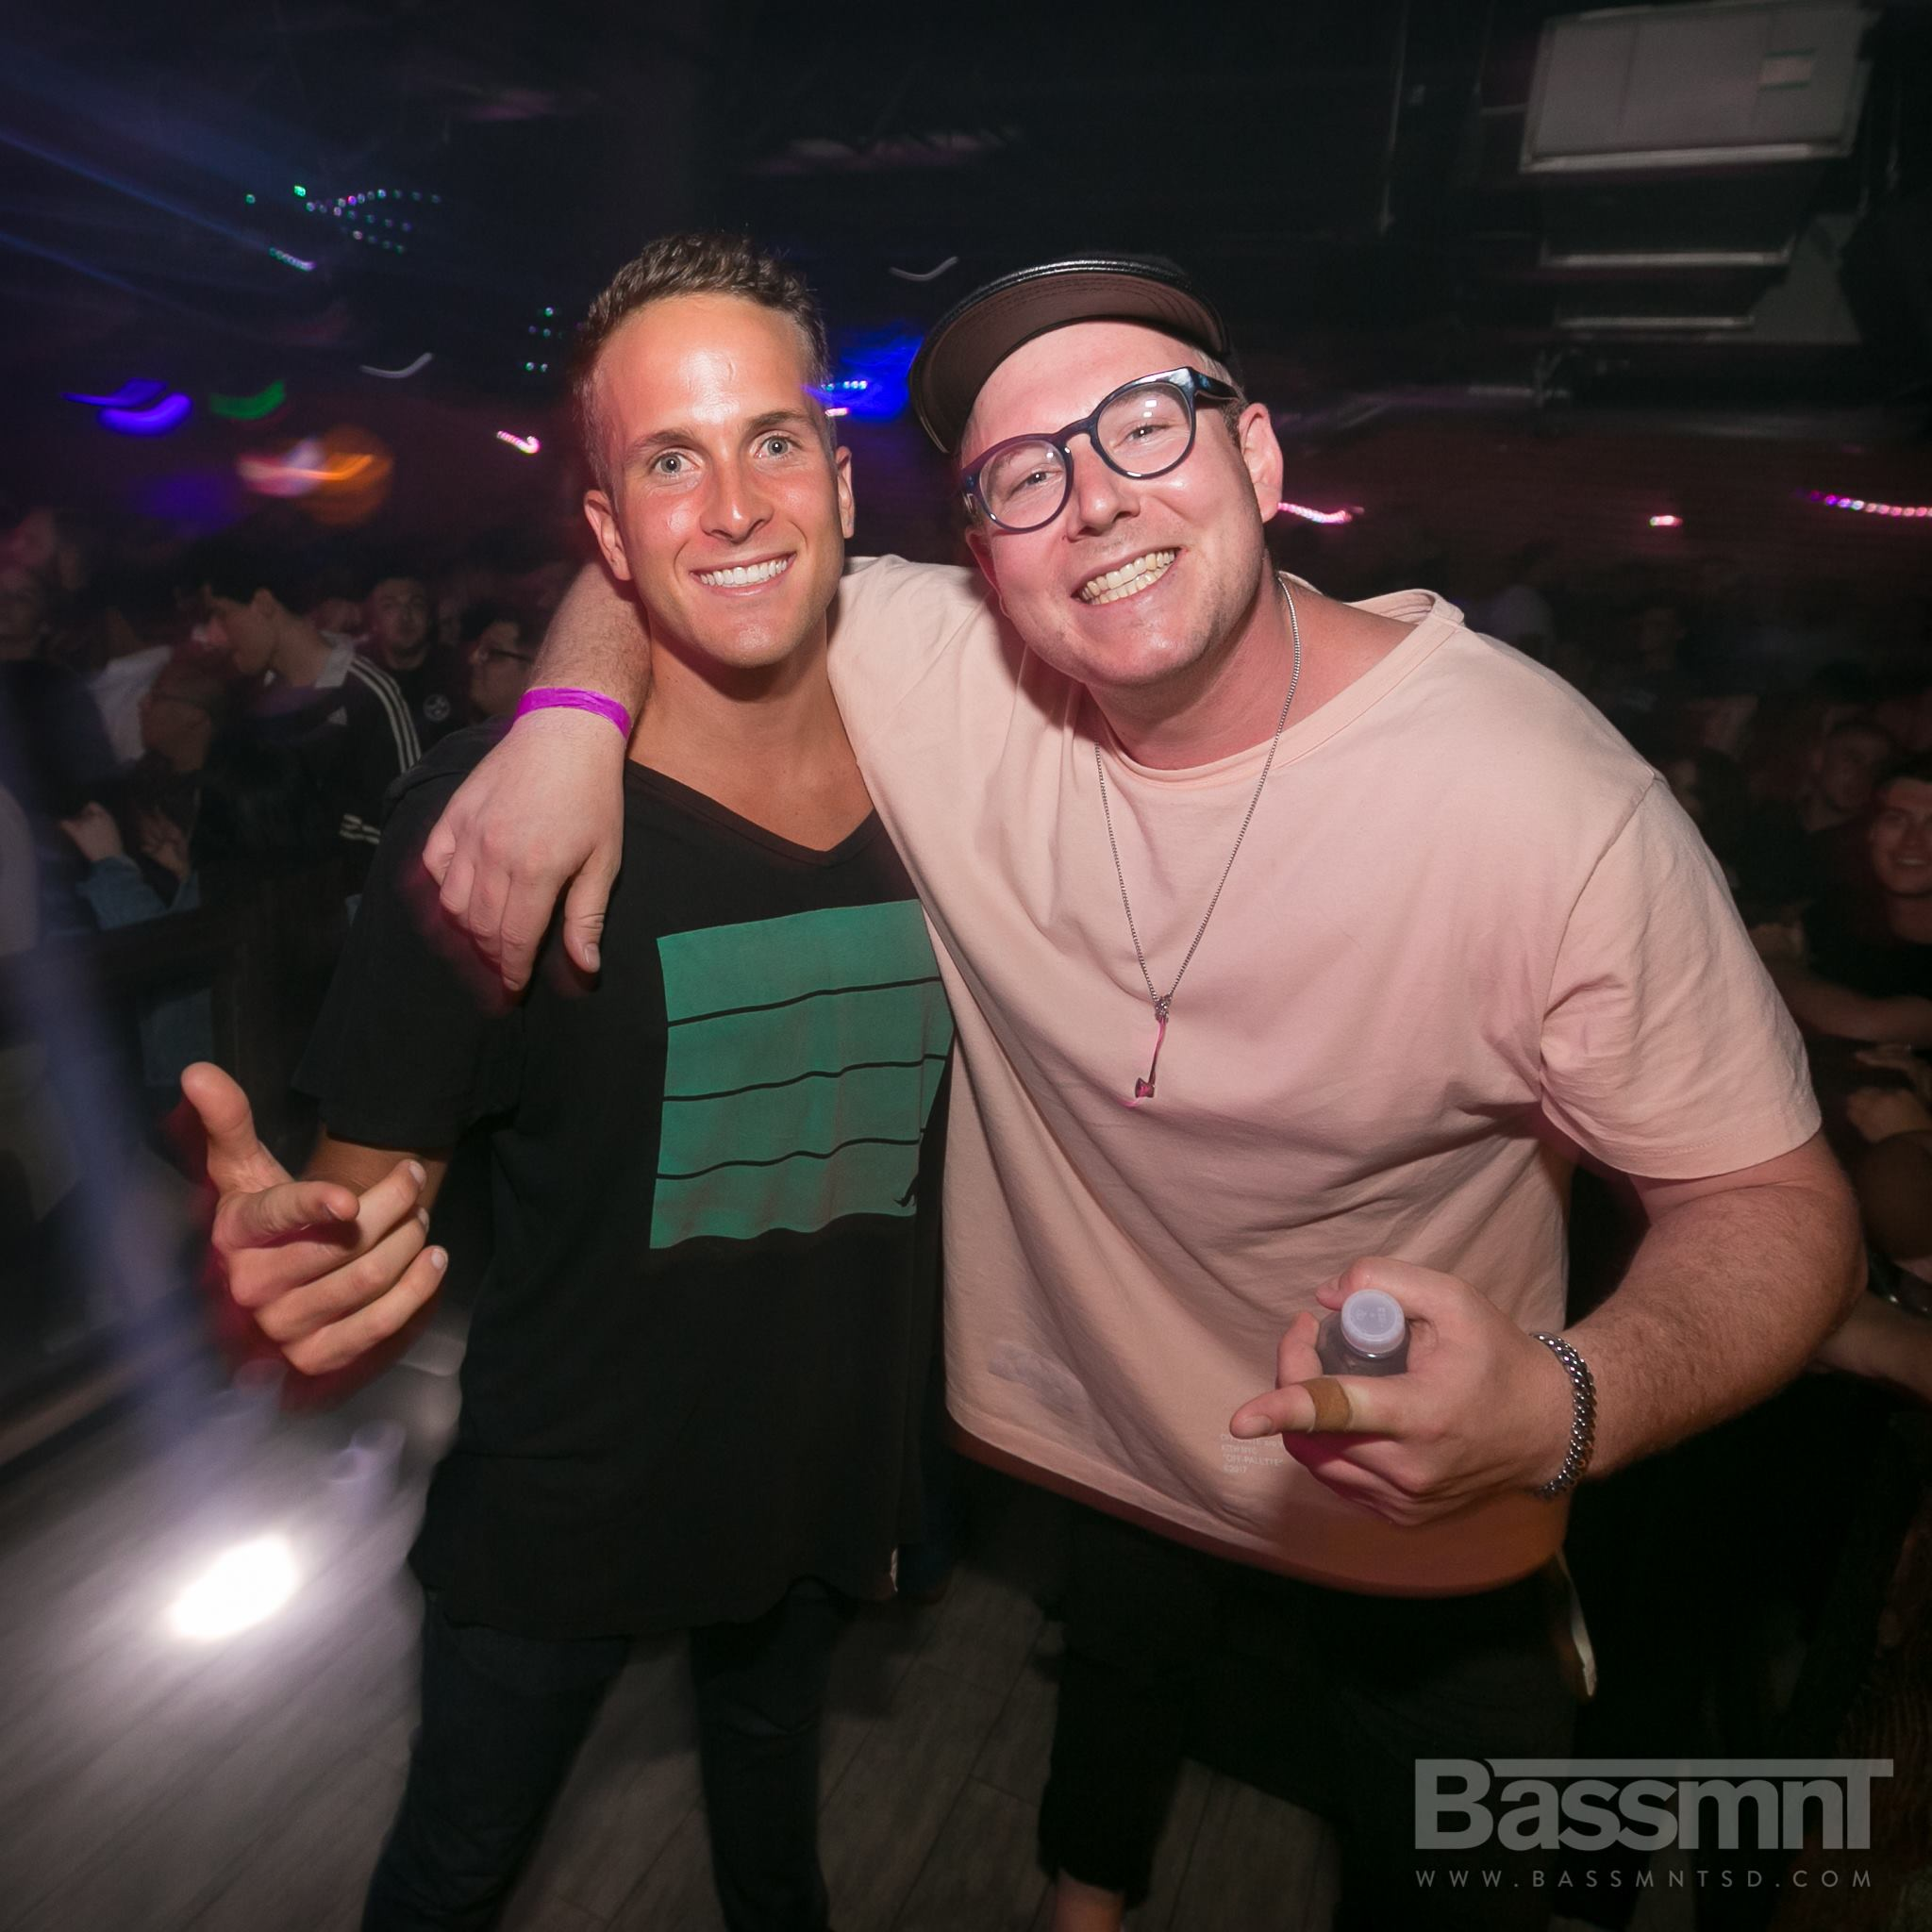 claenslate-and-dr-fresch-at-bassmnt-nightclub-in-san-diego-california-dj-g-house-trap